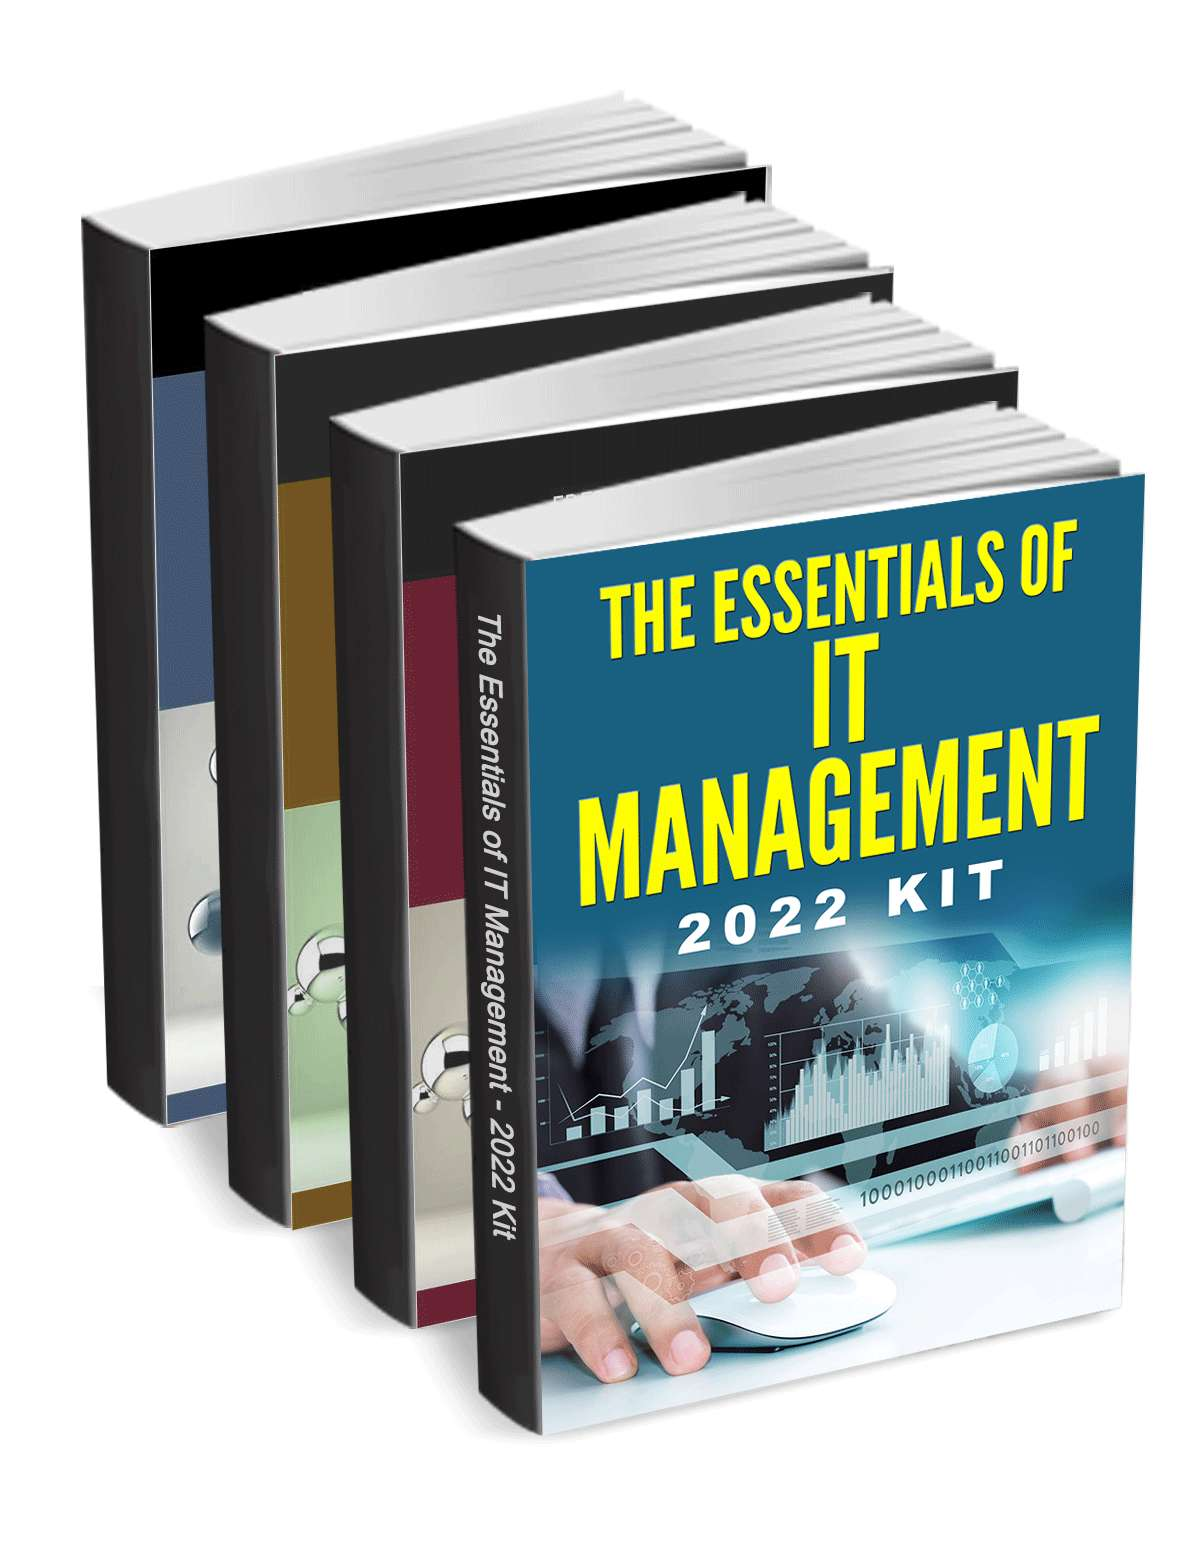 The Essentials of IT Management - November 2017 Kit